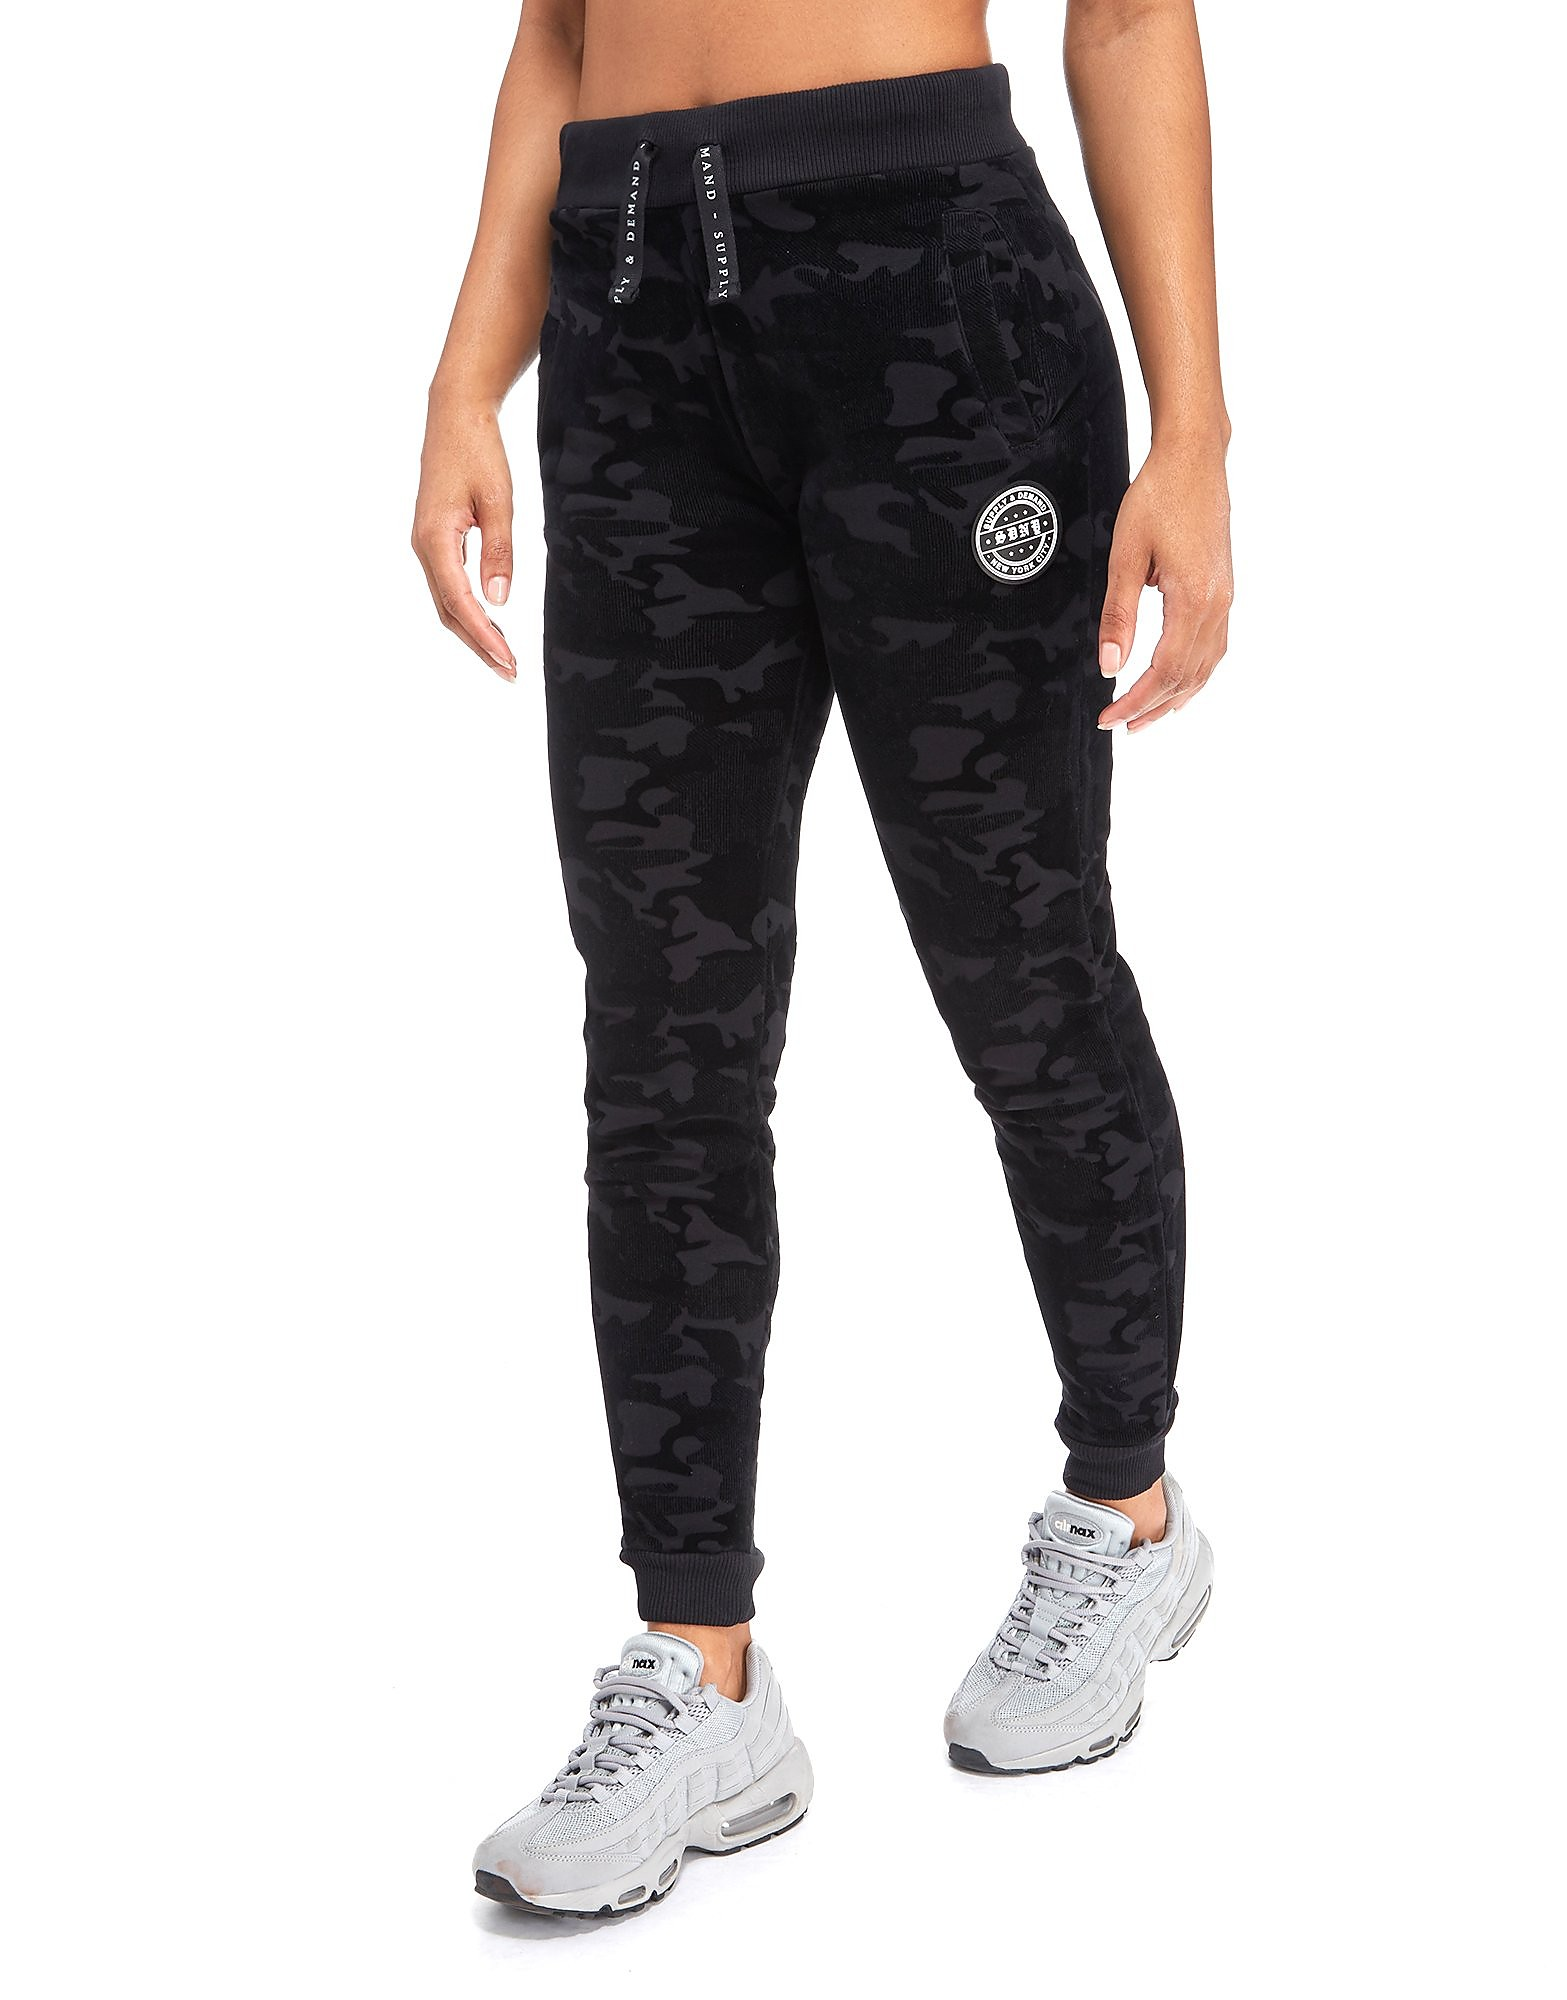 Supply & Demand Velour Camo Tracksuit Bottoms